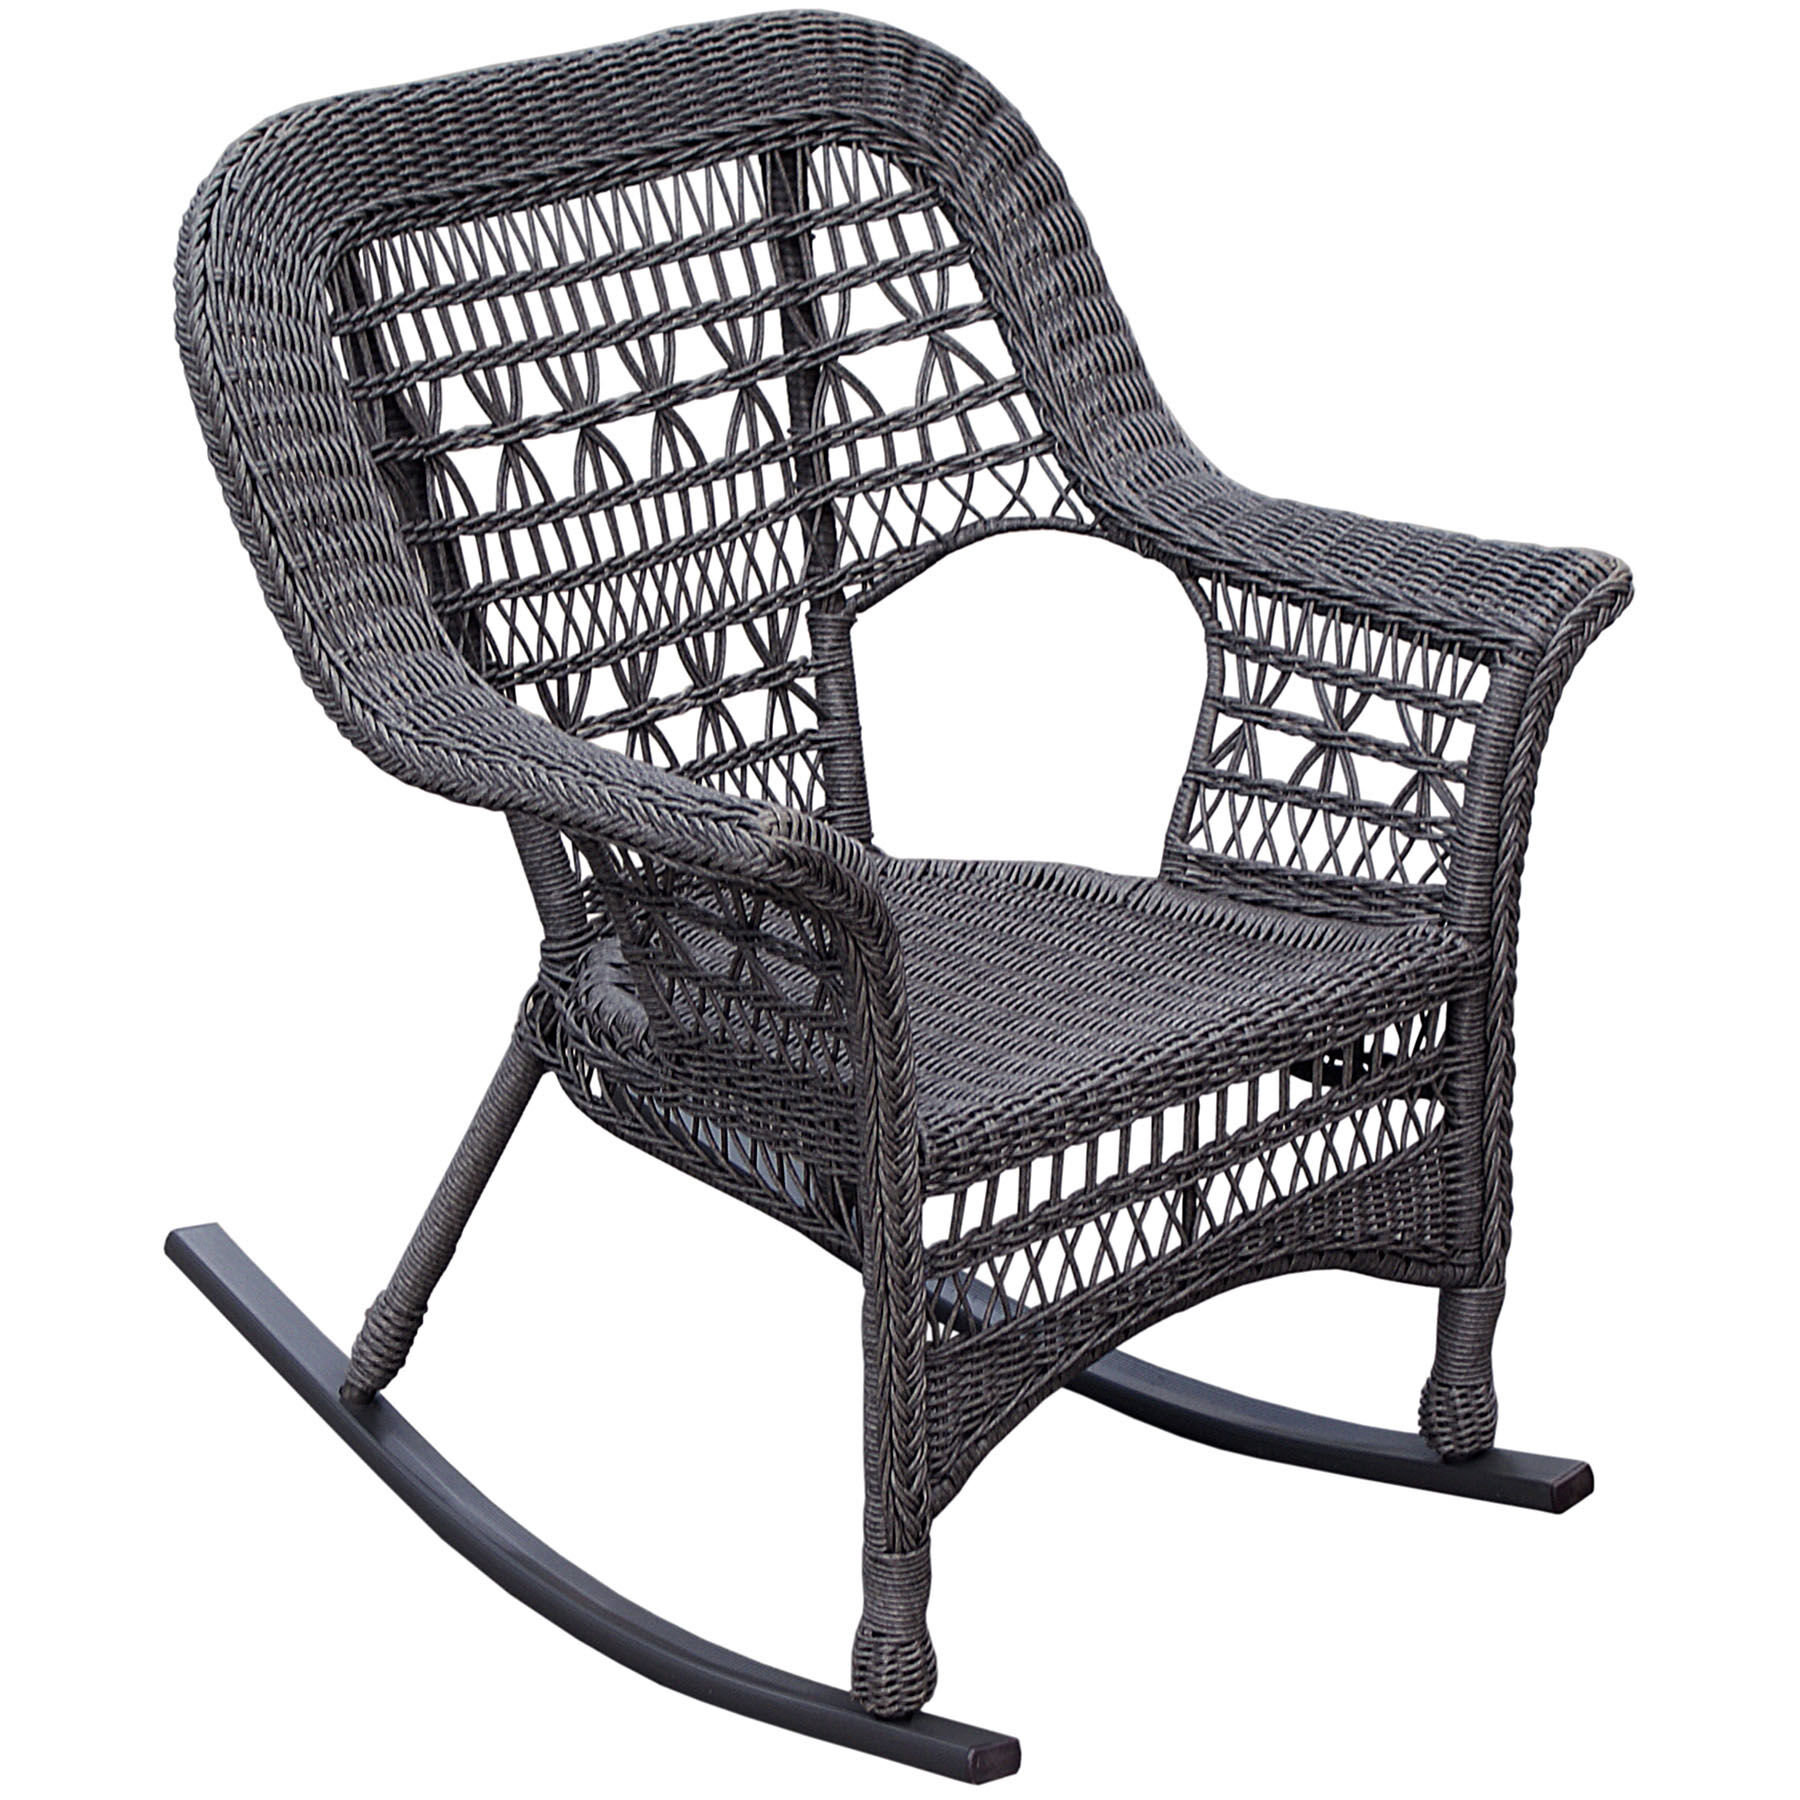 Best Place To Buy Rocking Chairs Wicker Rocking Chair Grey At Home